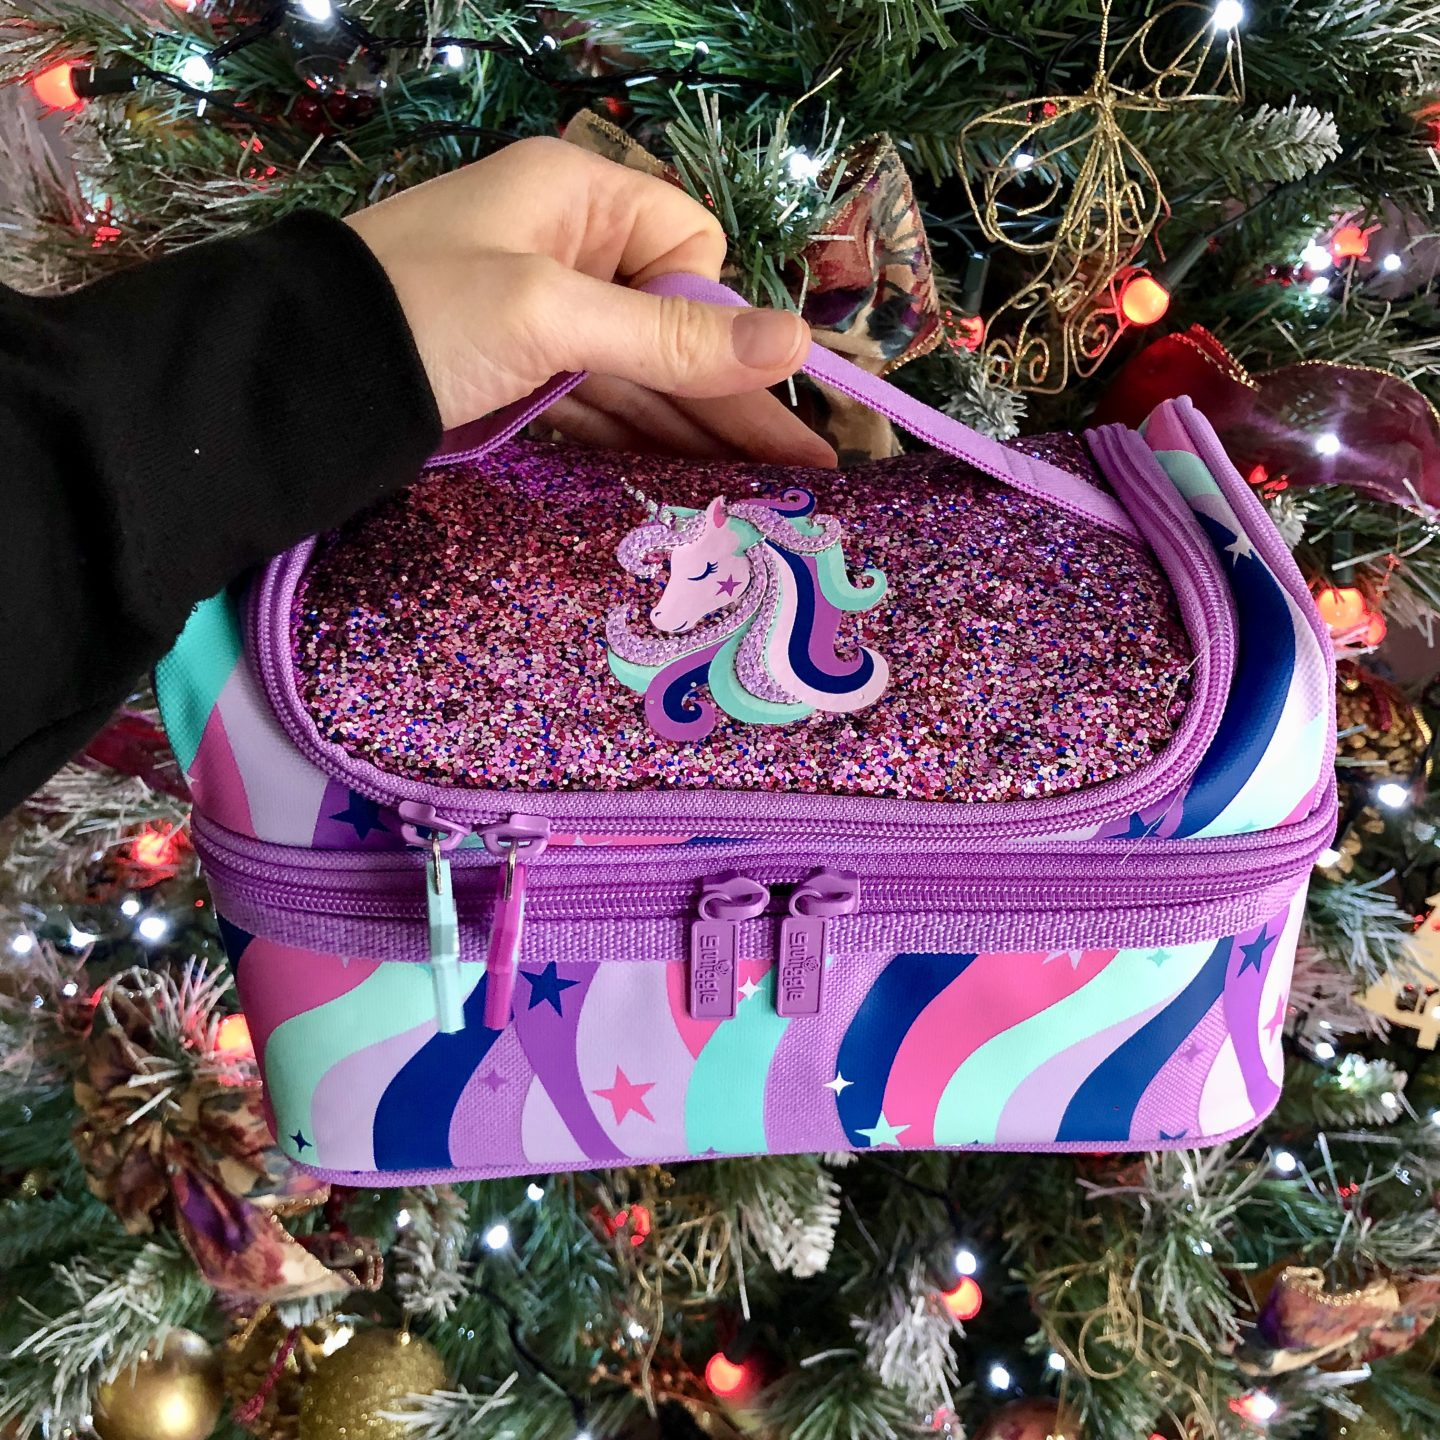 Top ten unicorn Christmas gifts